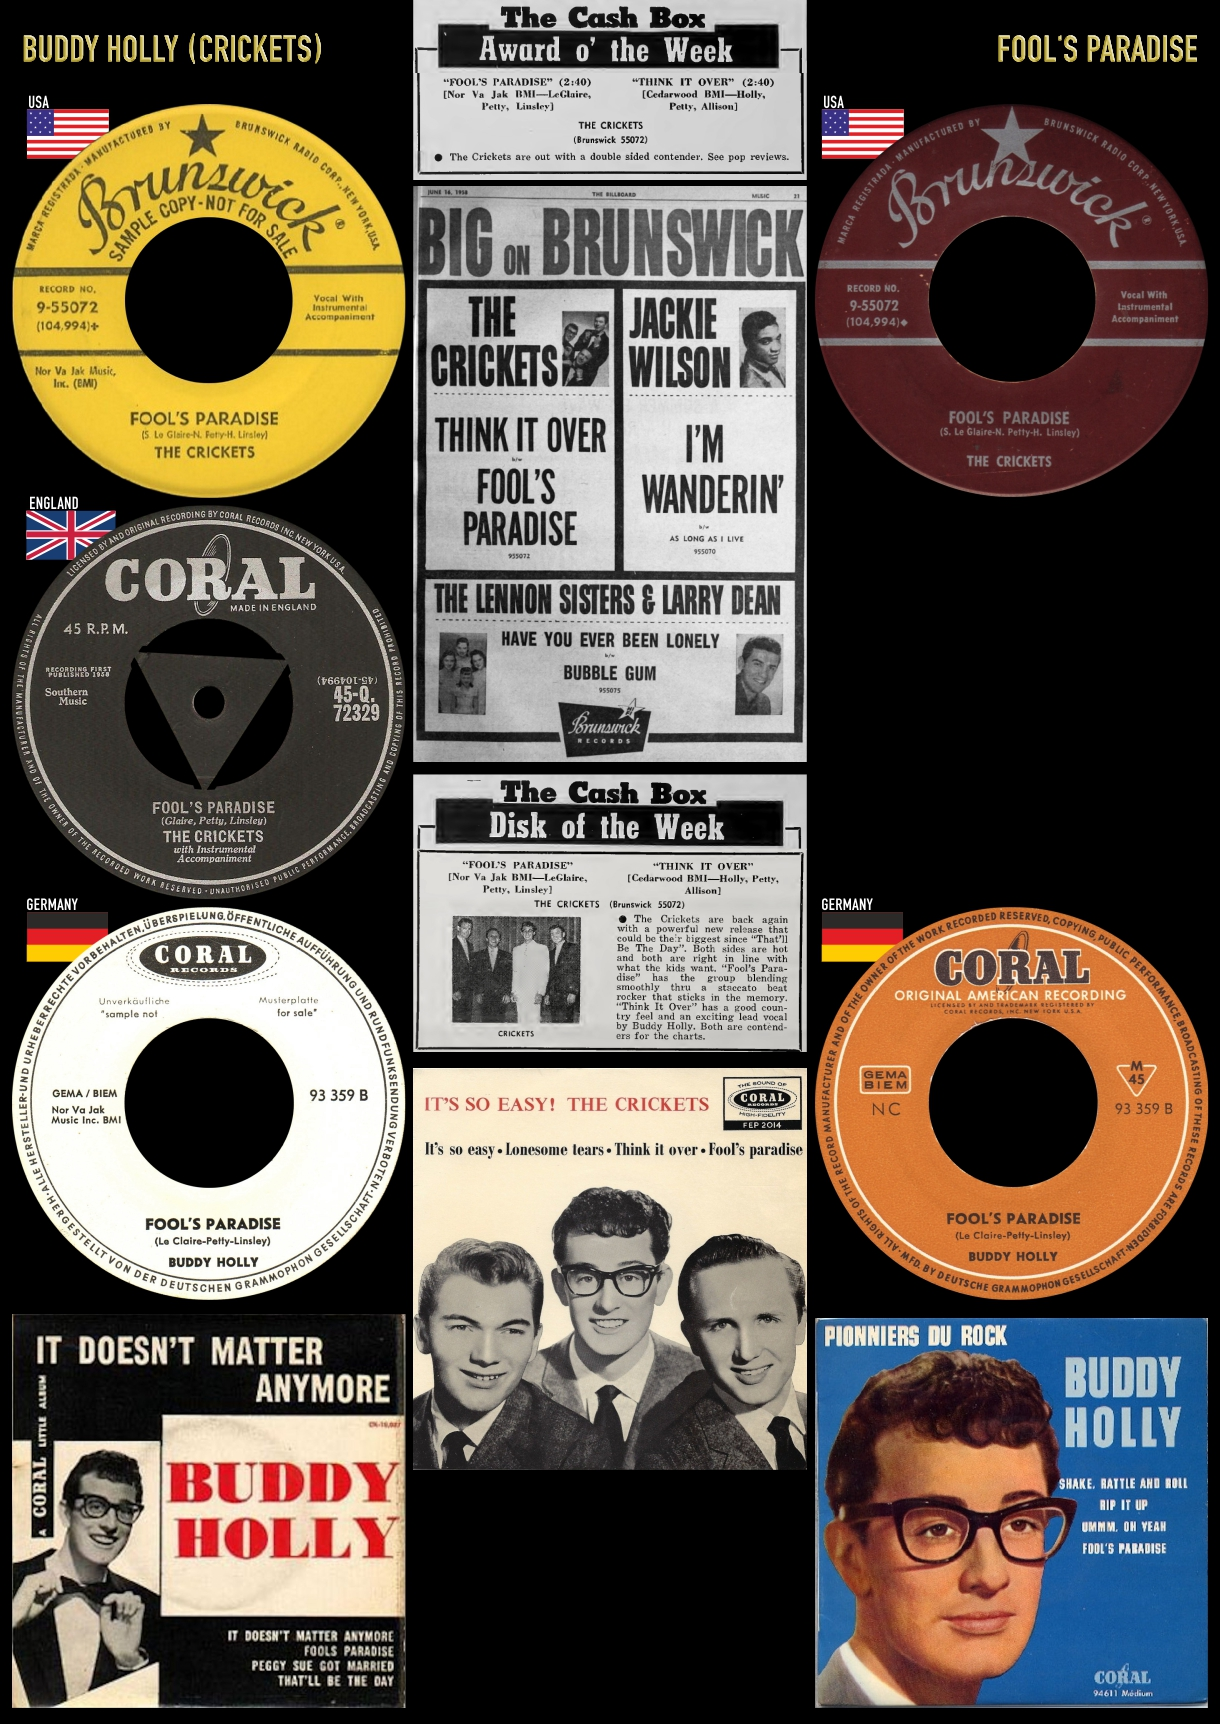 580804_Buddy Holly_Fool's Paradise